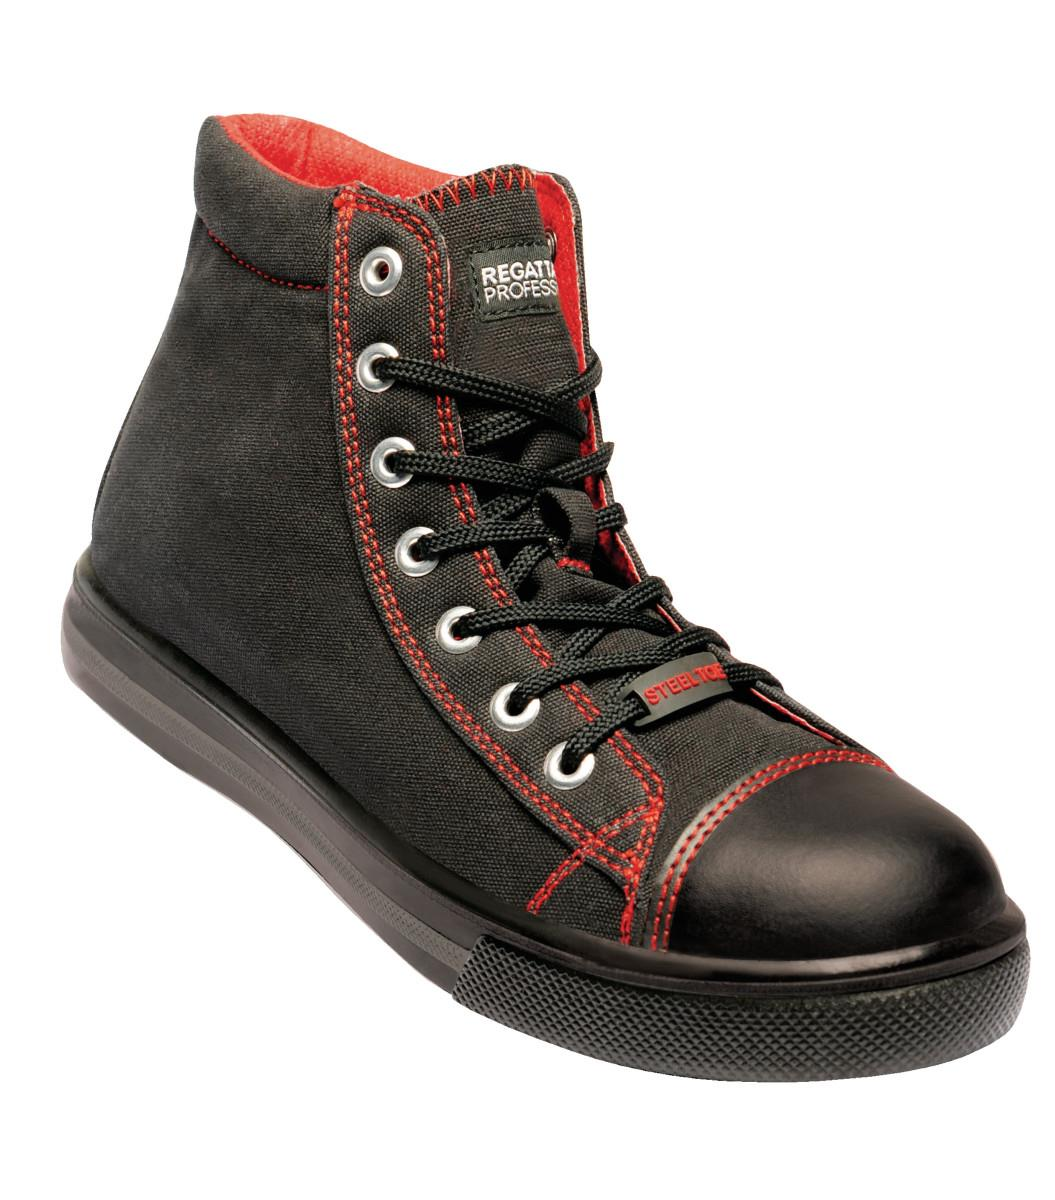 7538781d4d7 SBP SRC - Regatta TRK117 Playoff SBP Safety Boot - Black/Red - Conforms to  EN20345: 2011 - Pair - BT-TRK11